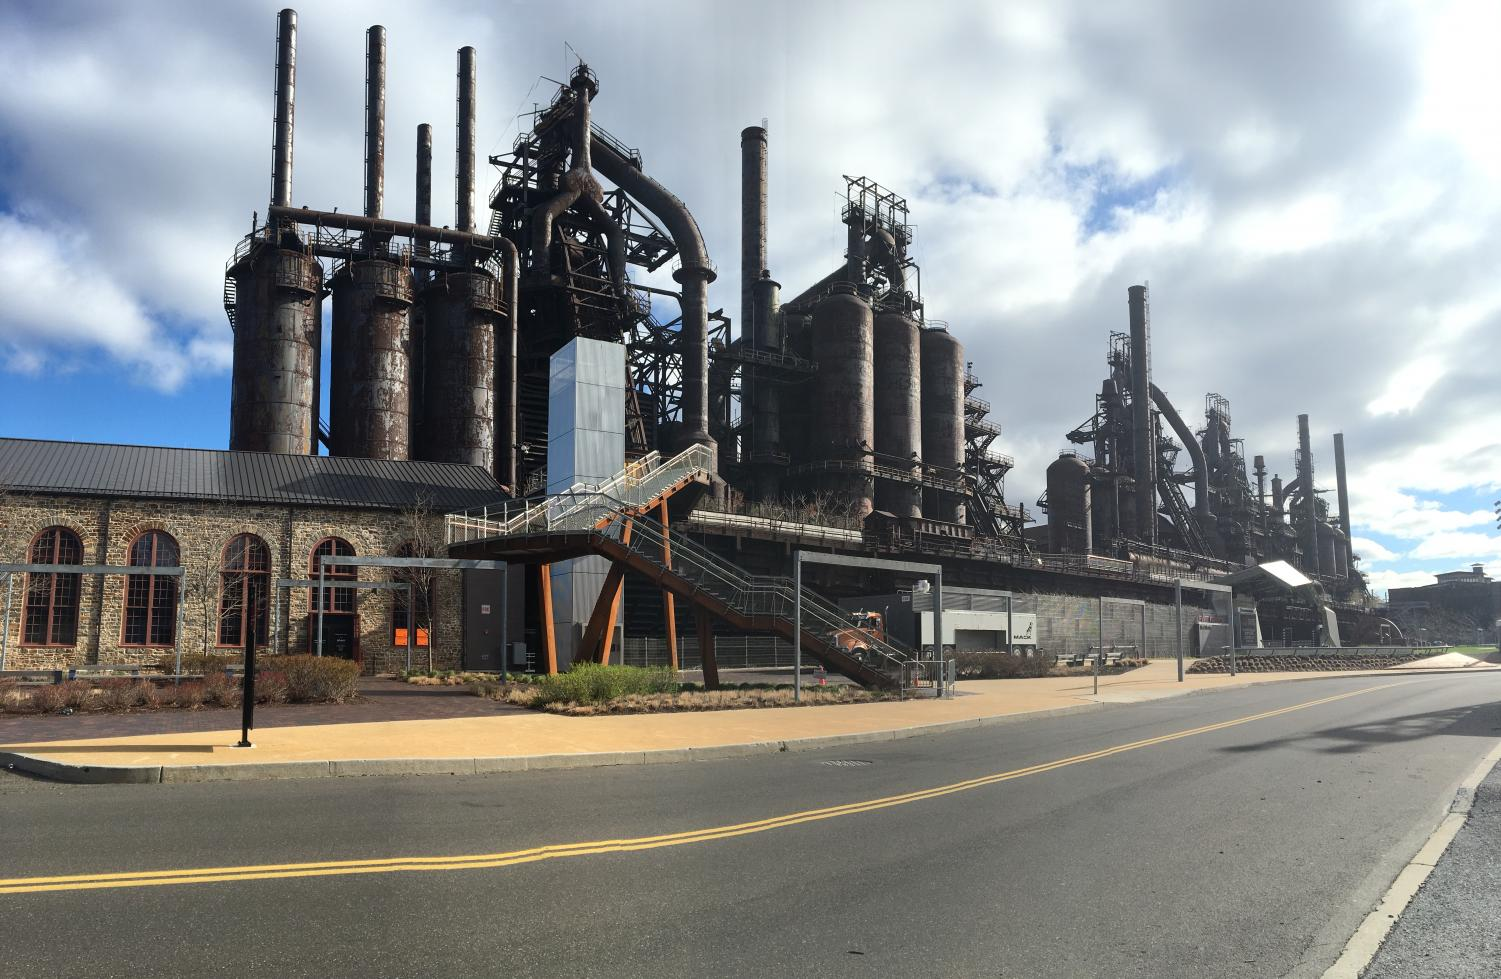 The Bethlehem Steelstacks located near Christkindlmarkt.